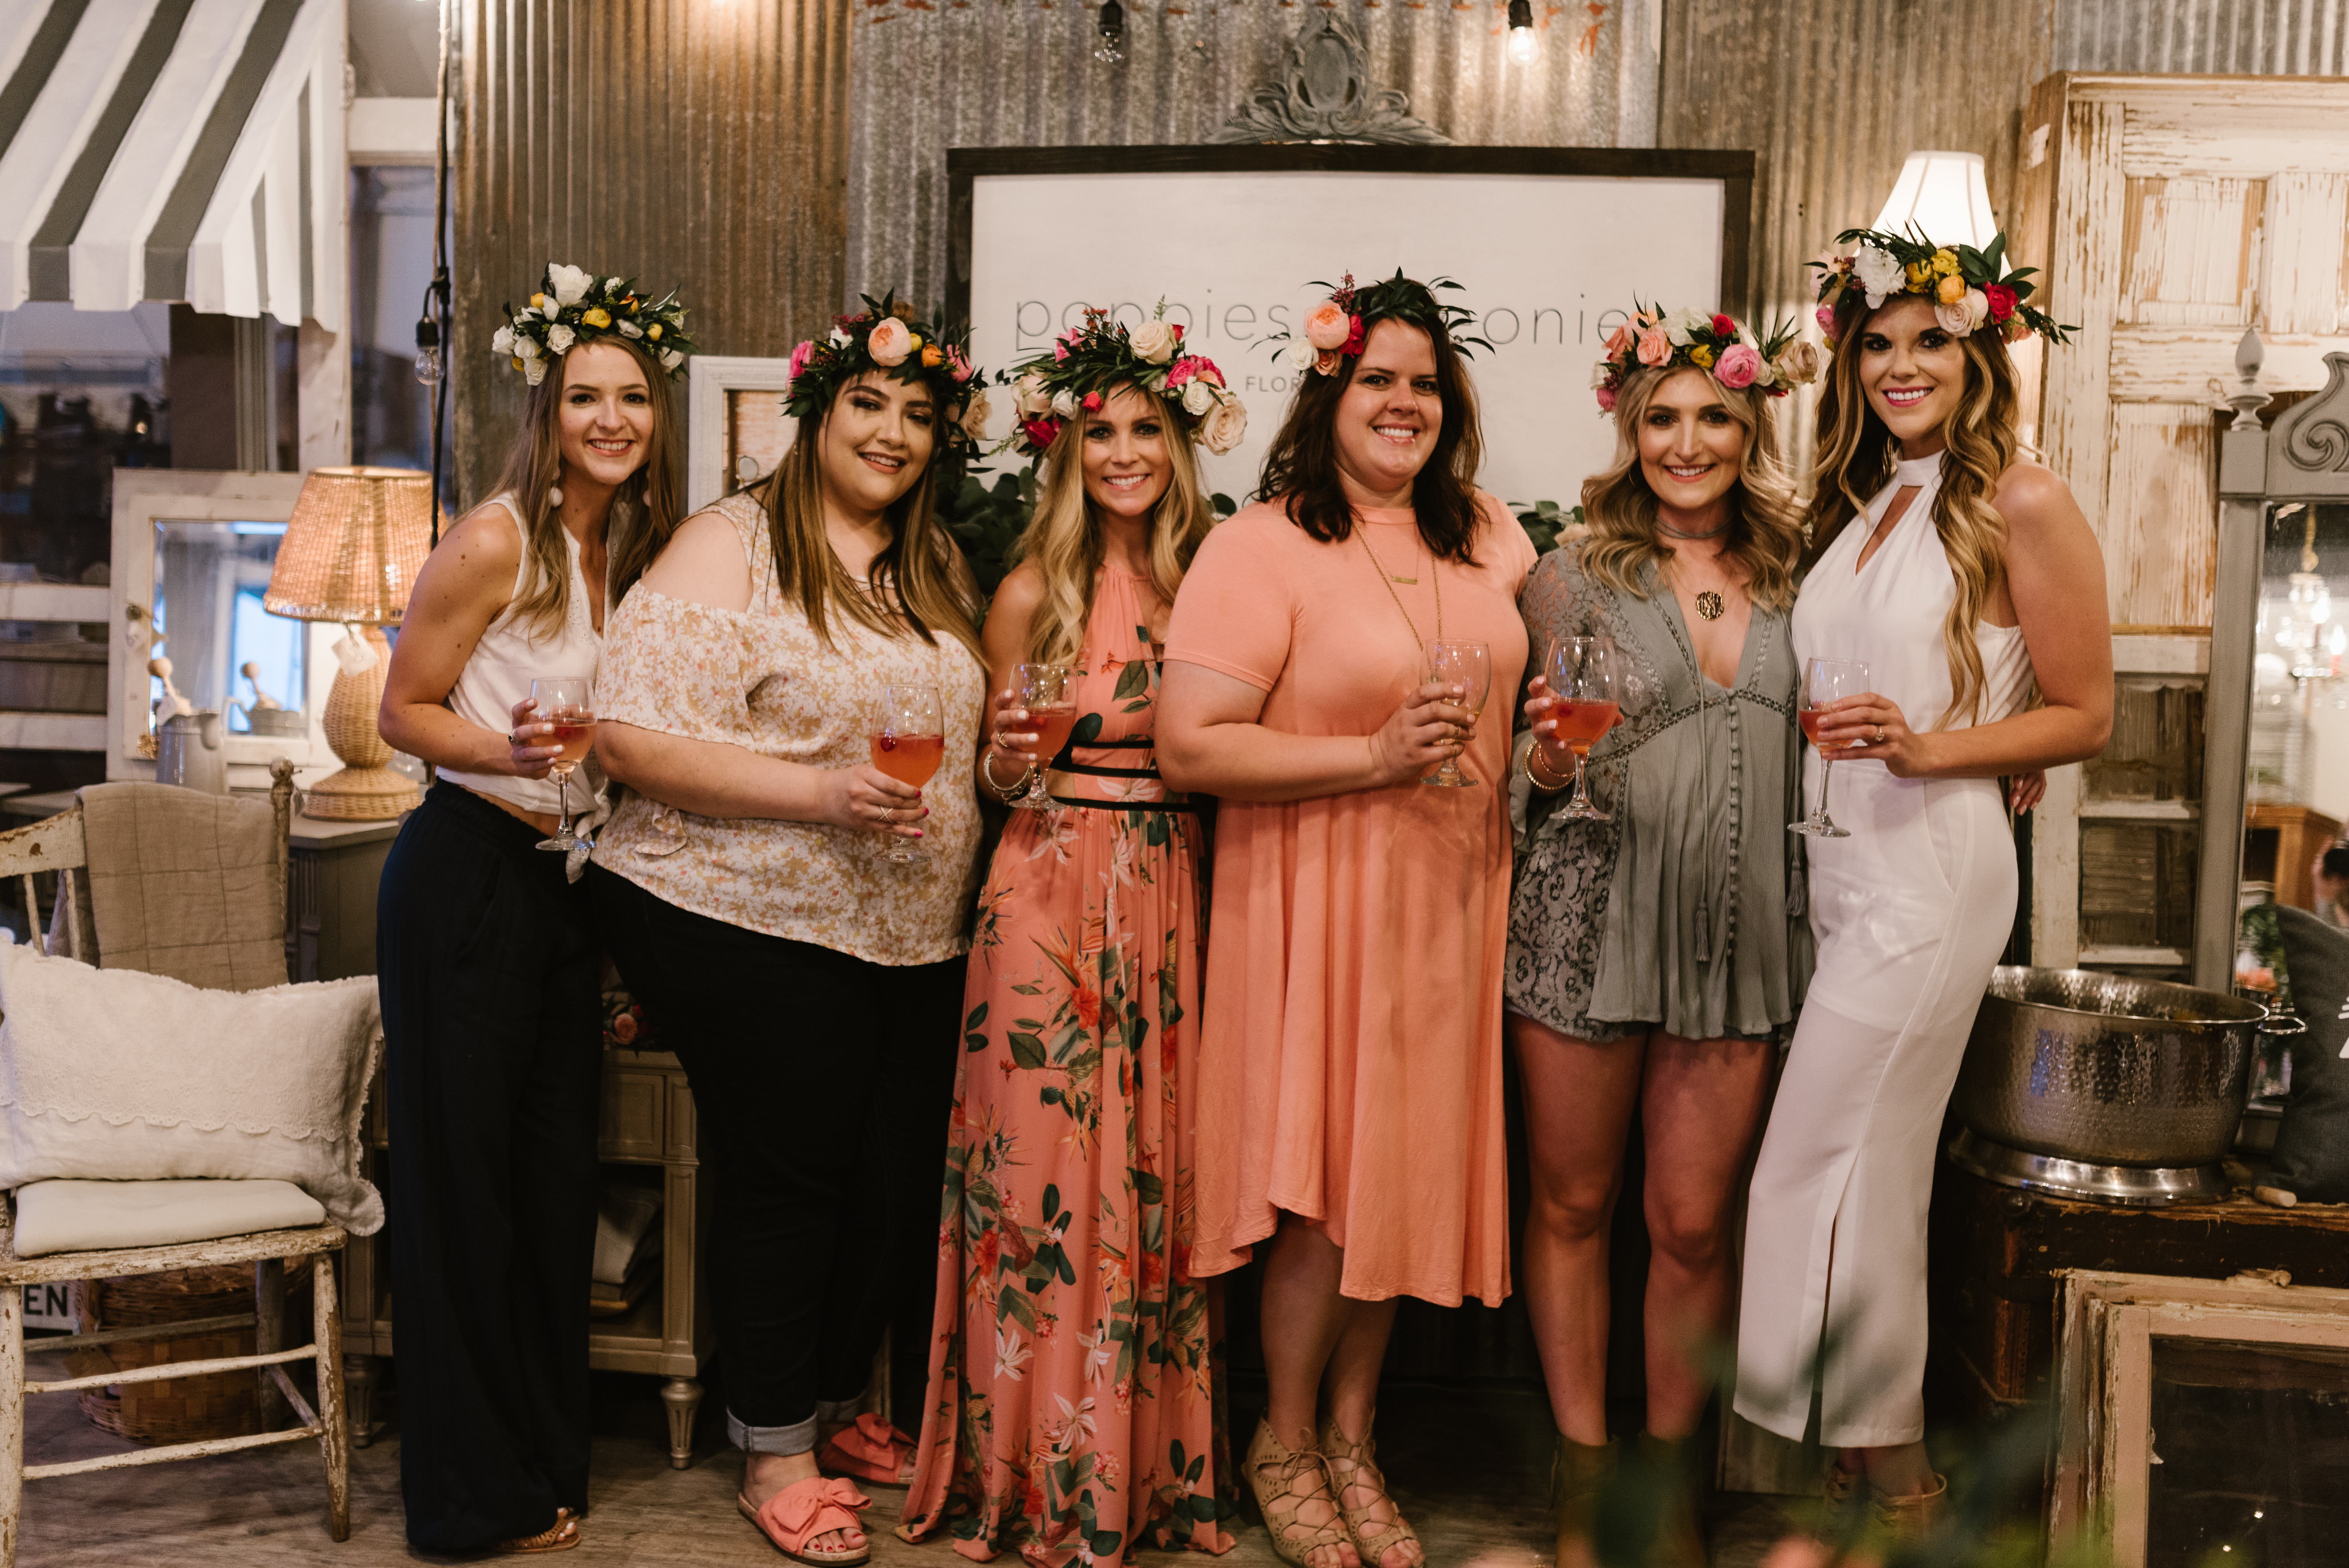 Flower Crown Party in West Texas | Bachelorette Idea | Lubbock, TX bloggers | by lifestyle and fashion blogger Audrey Madison stowe